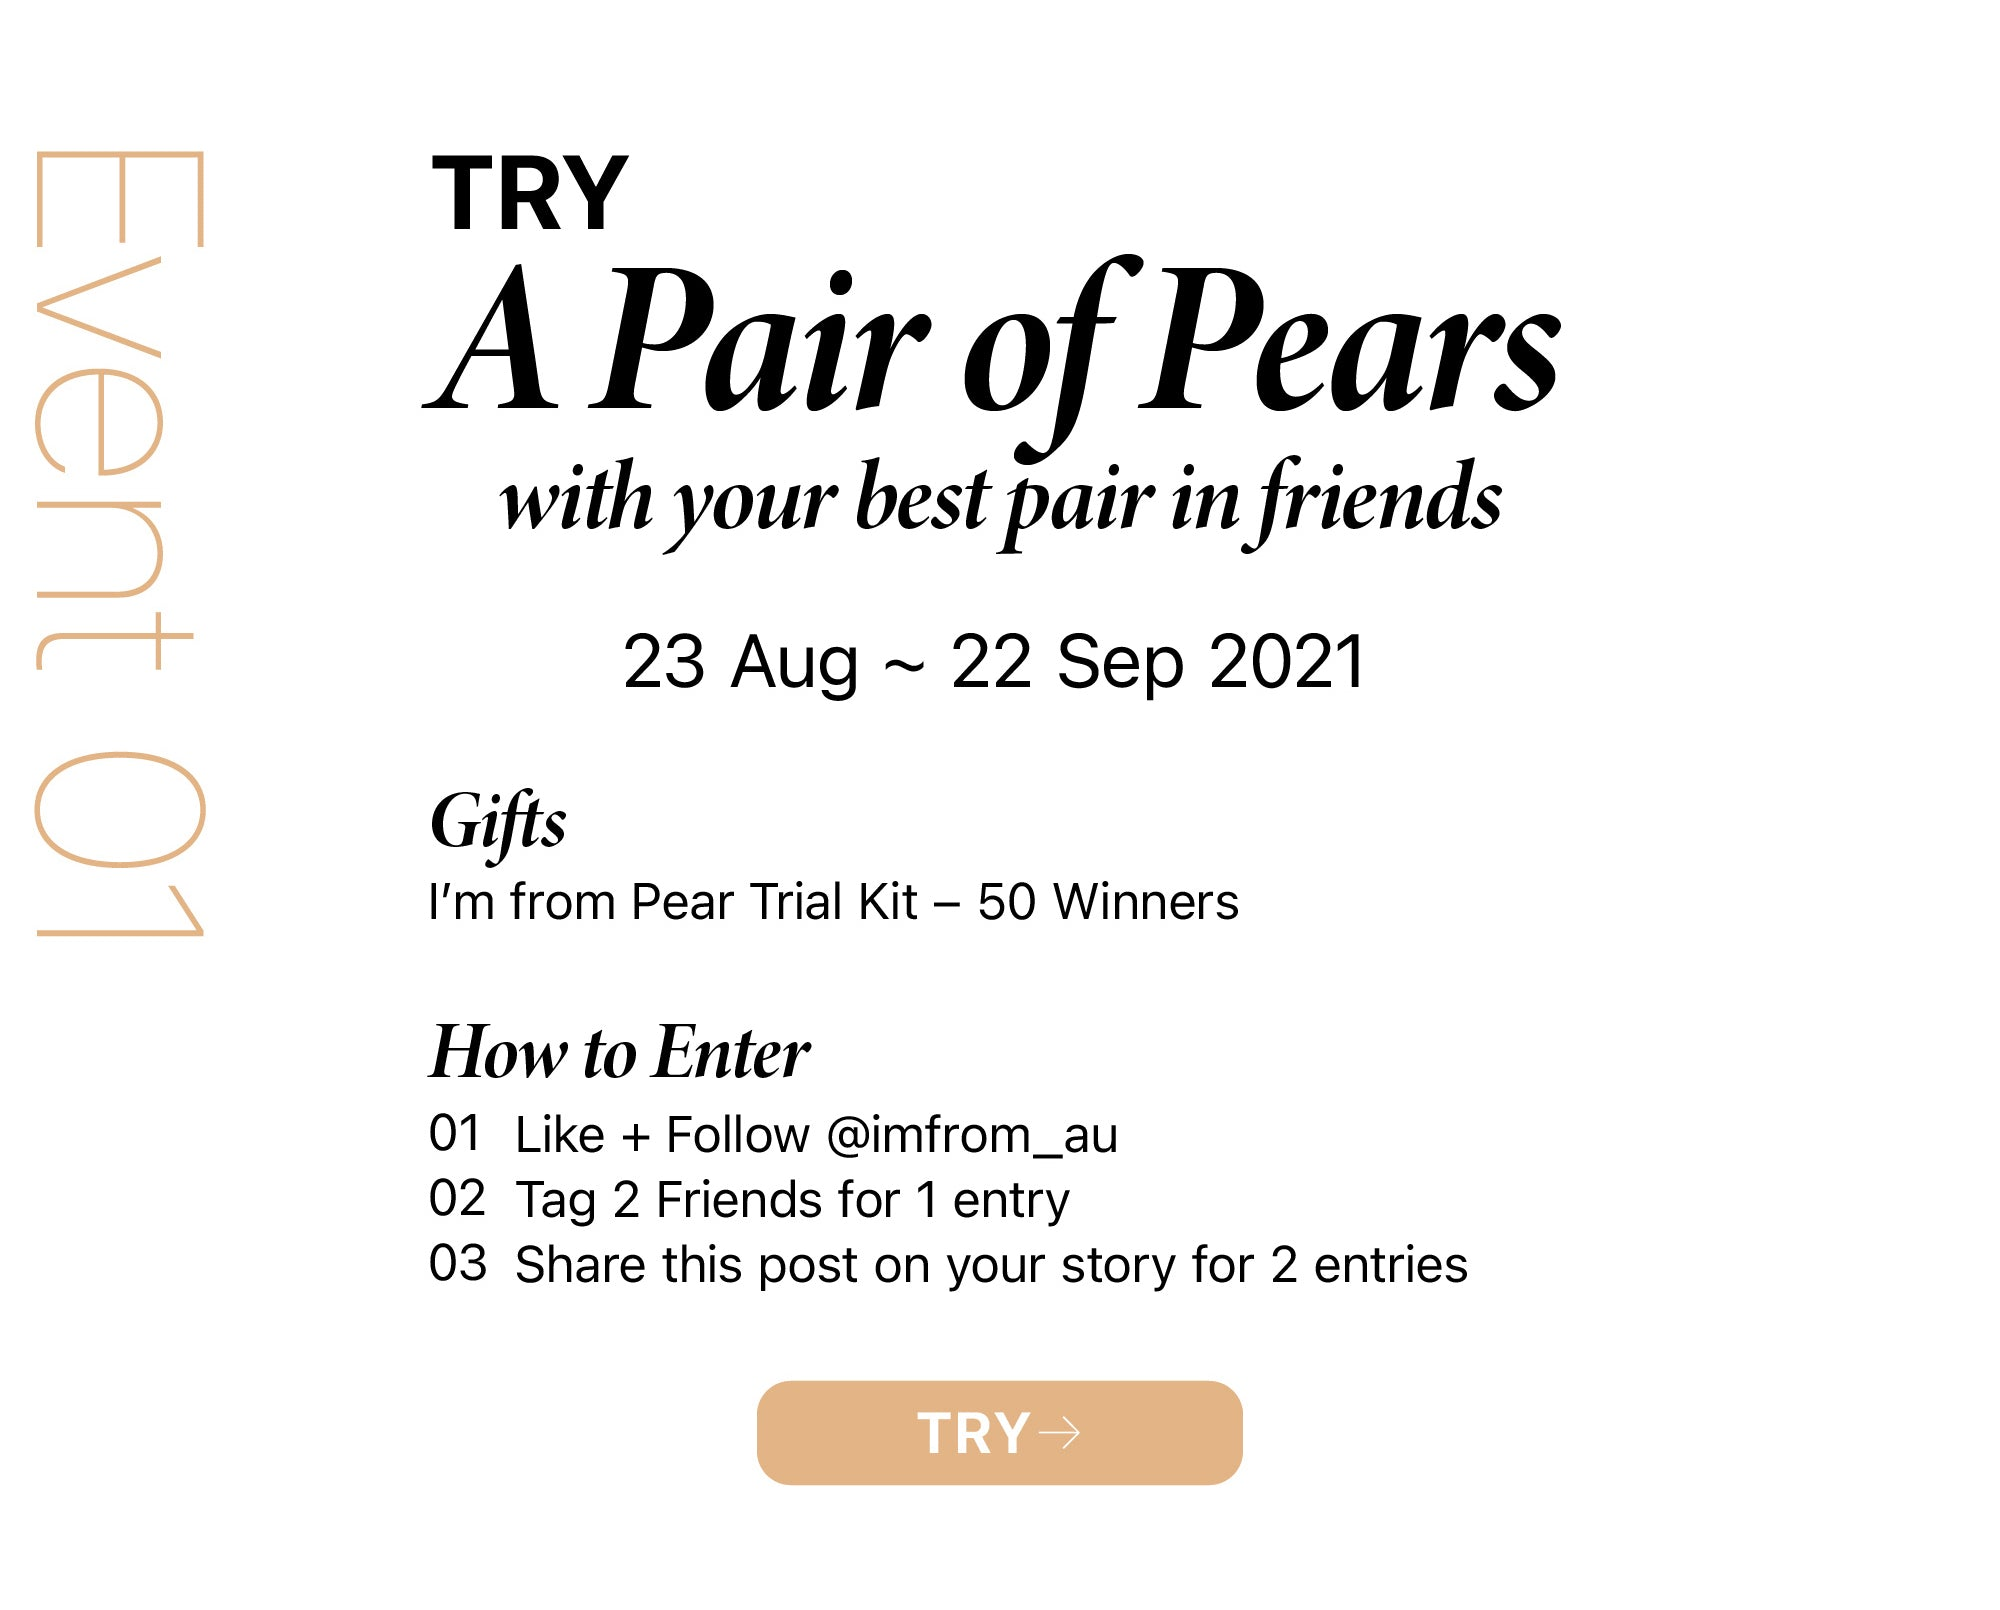 I'm from Pear Launching Event